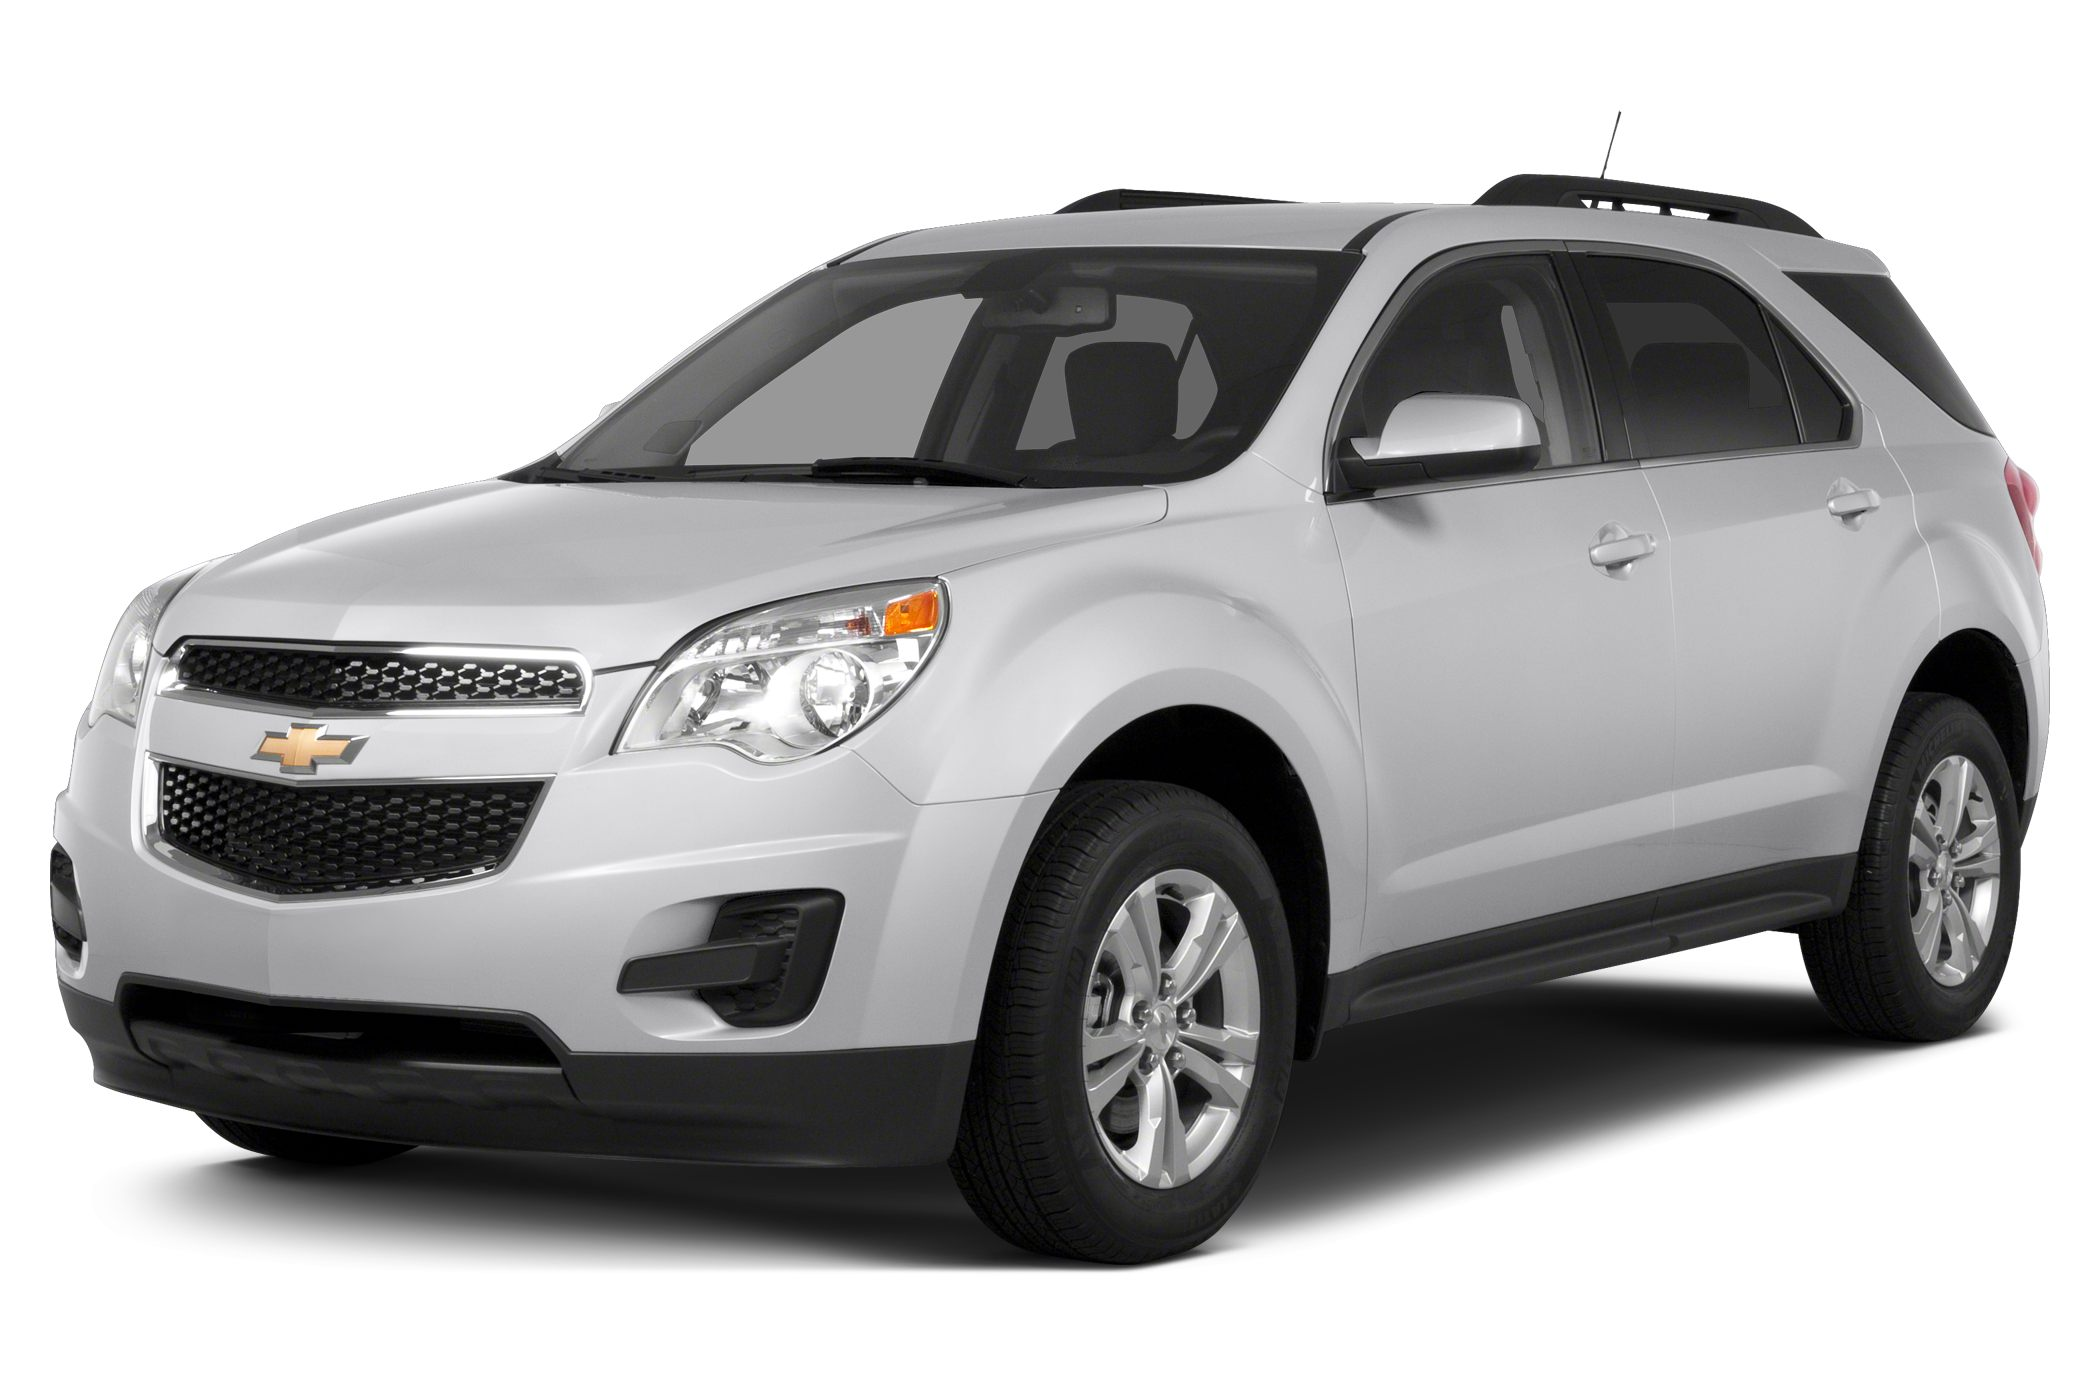 2015 Chevrolet Equinox 1LT SUV for sale in Milford for $27,985 with 5 miles